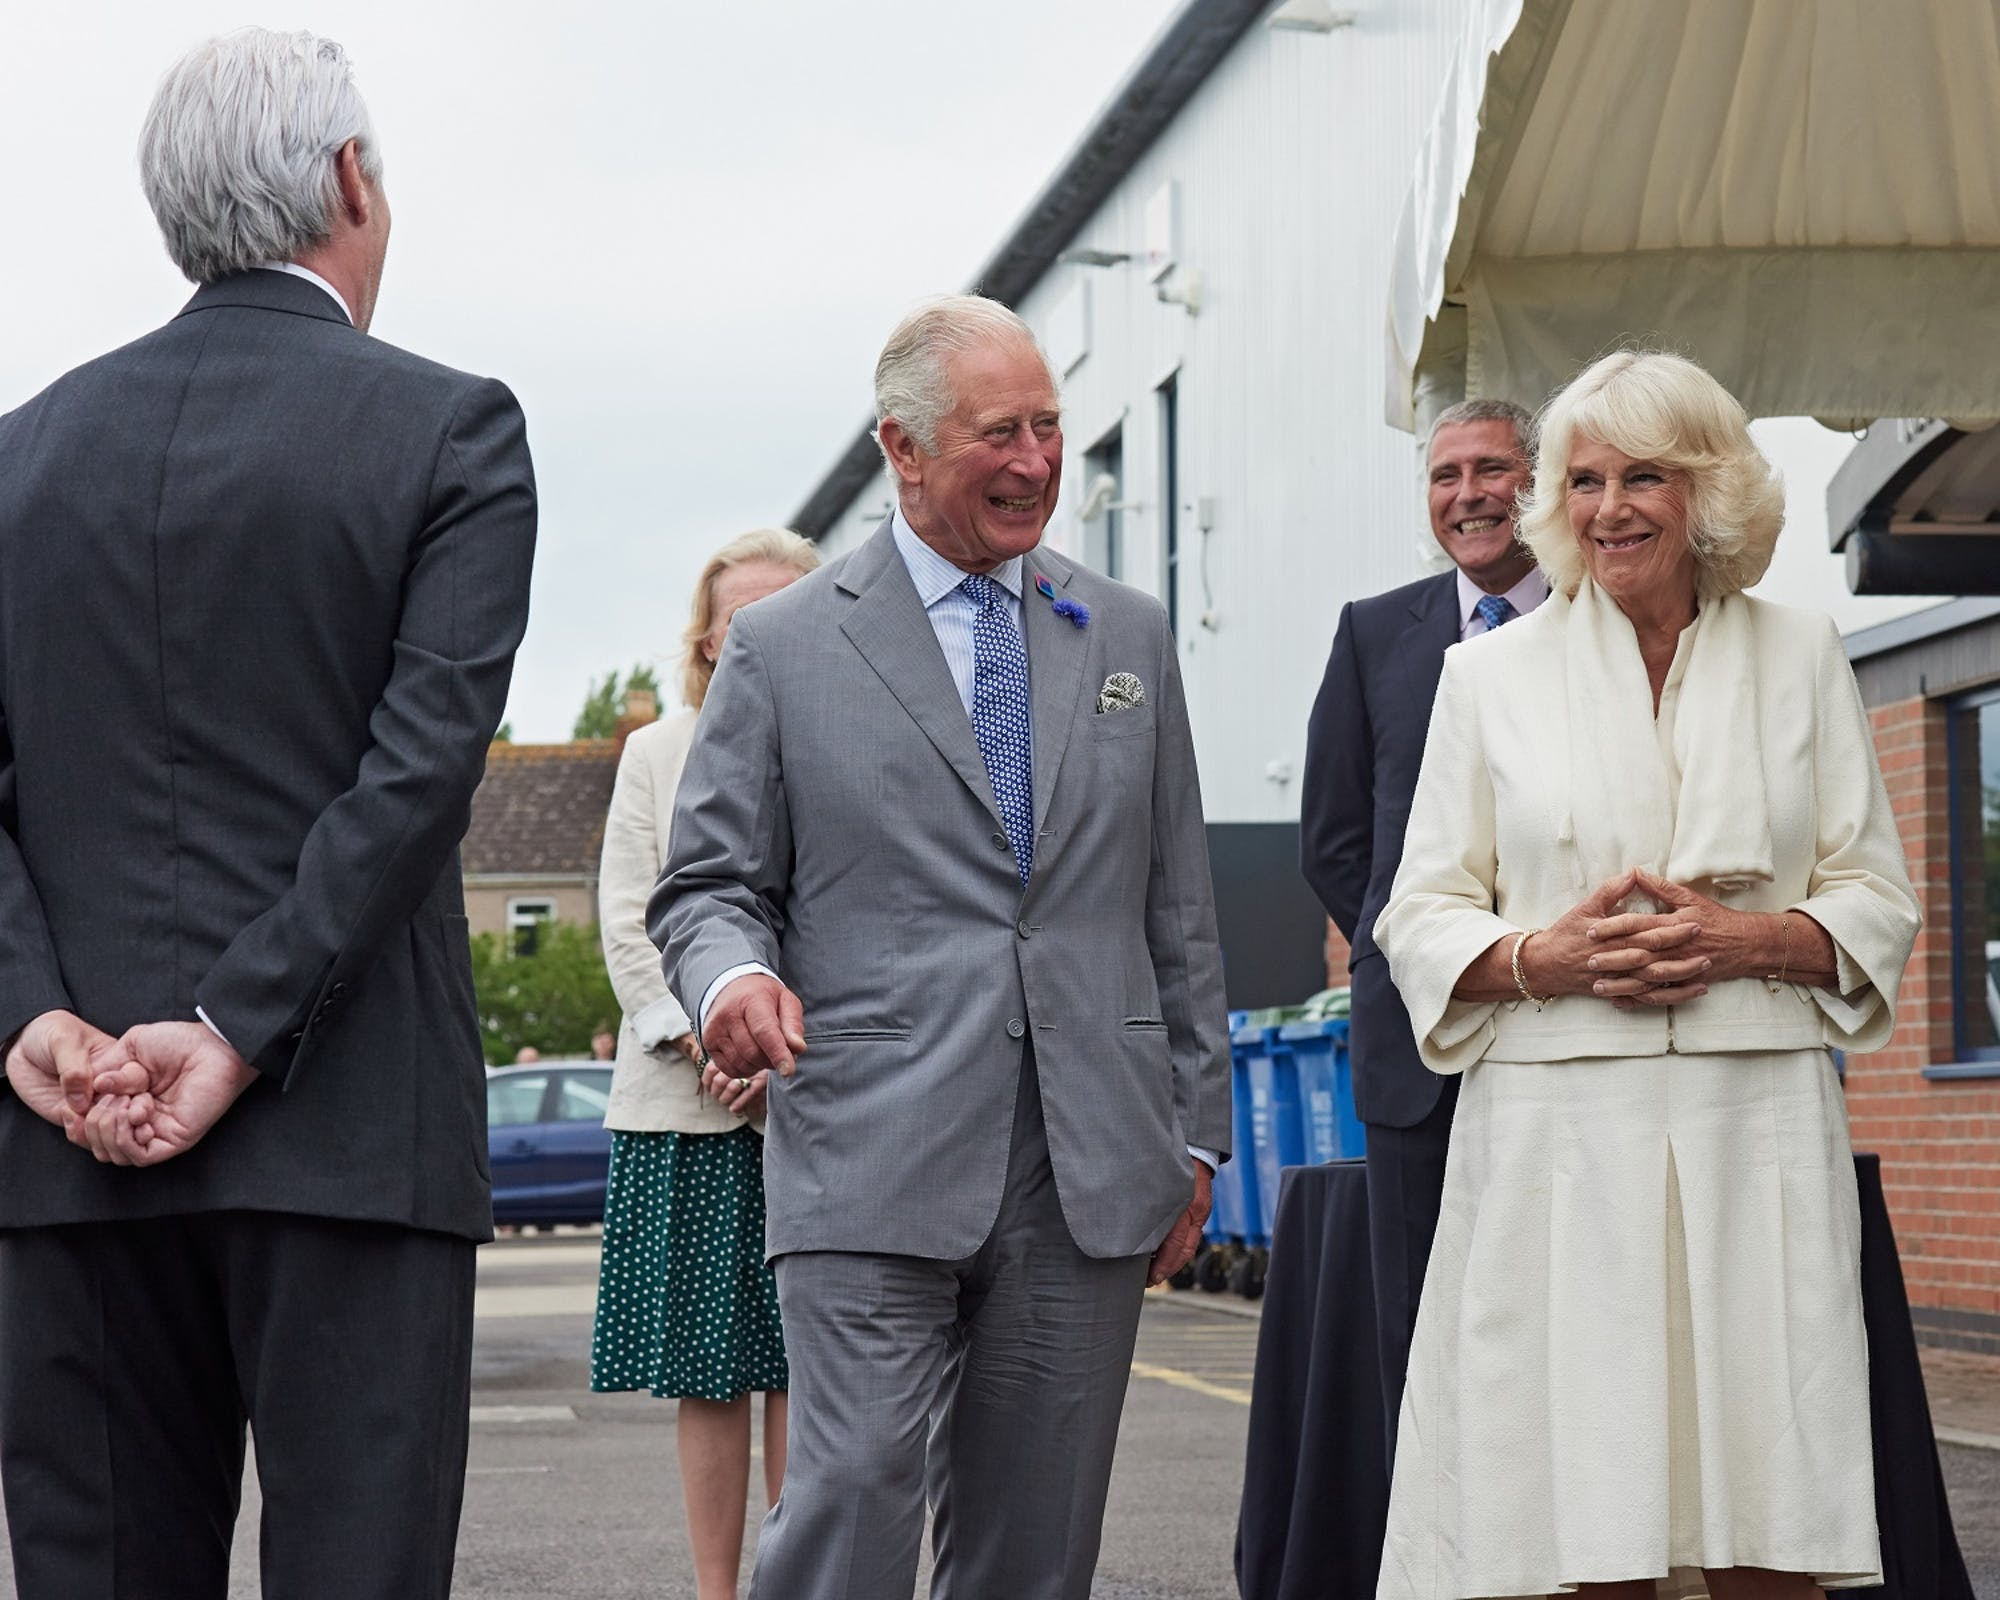 HRH The Prince of Wales and HRH The Duchess of Cornwall visit Turnbull & Asser